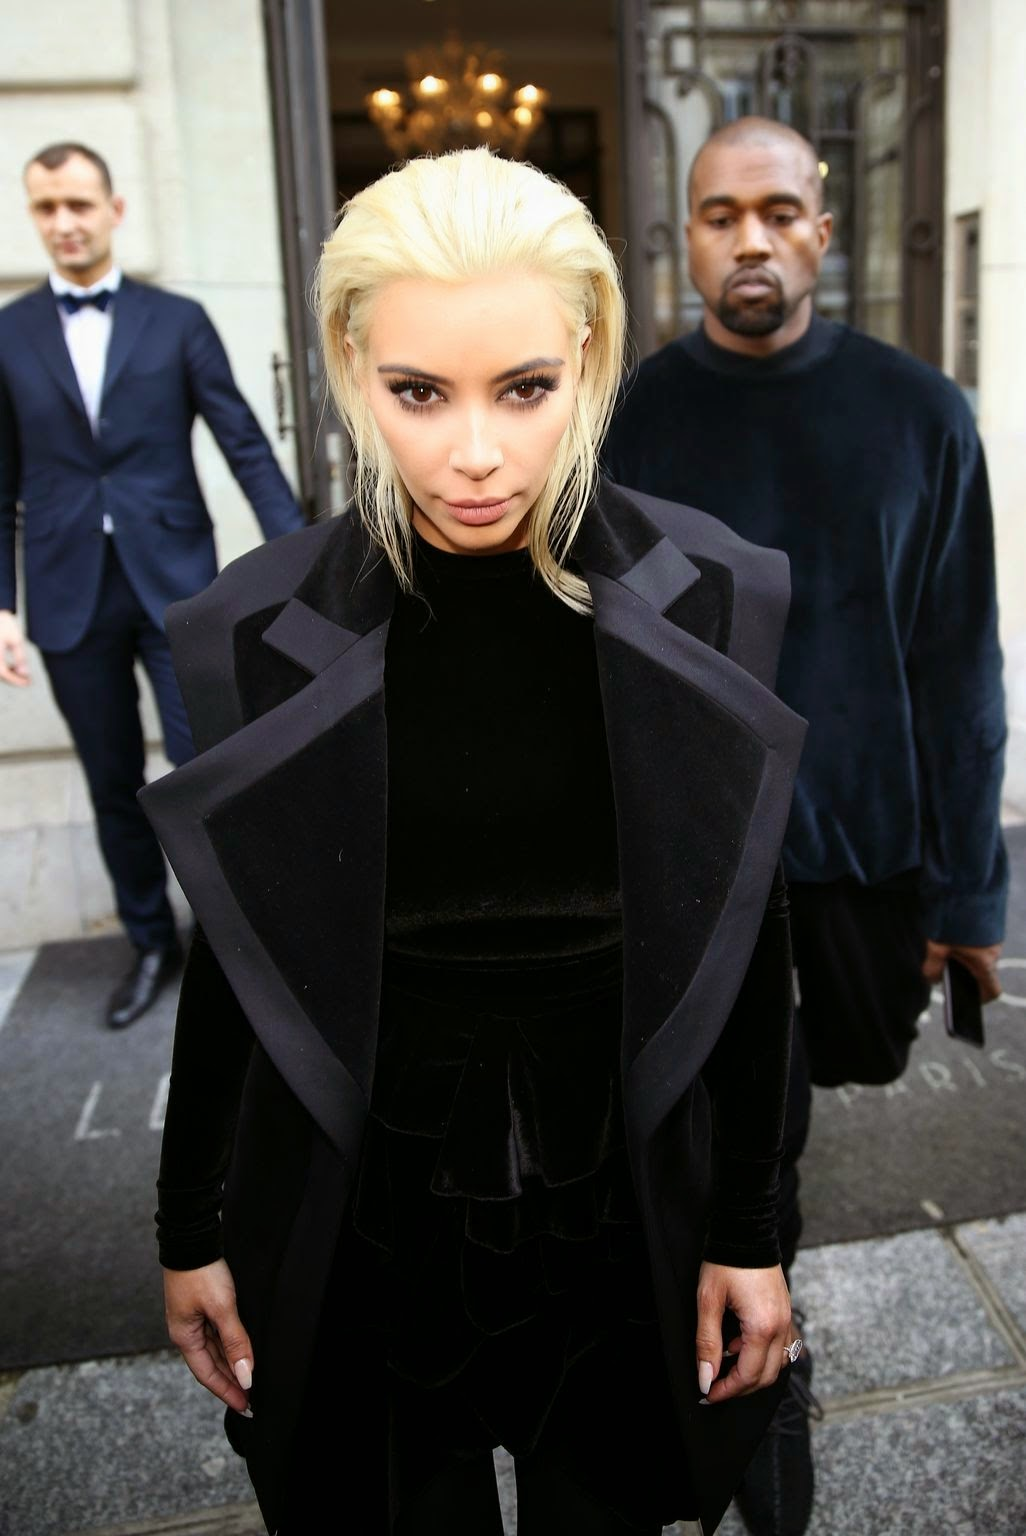 Socialite, Model, Reality TV @ Kim Kardashian Shows Off Her New Blonde Hairdo Out In Paris